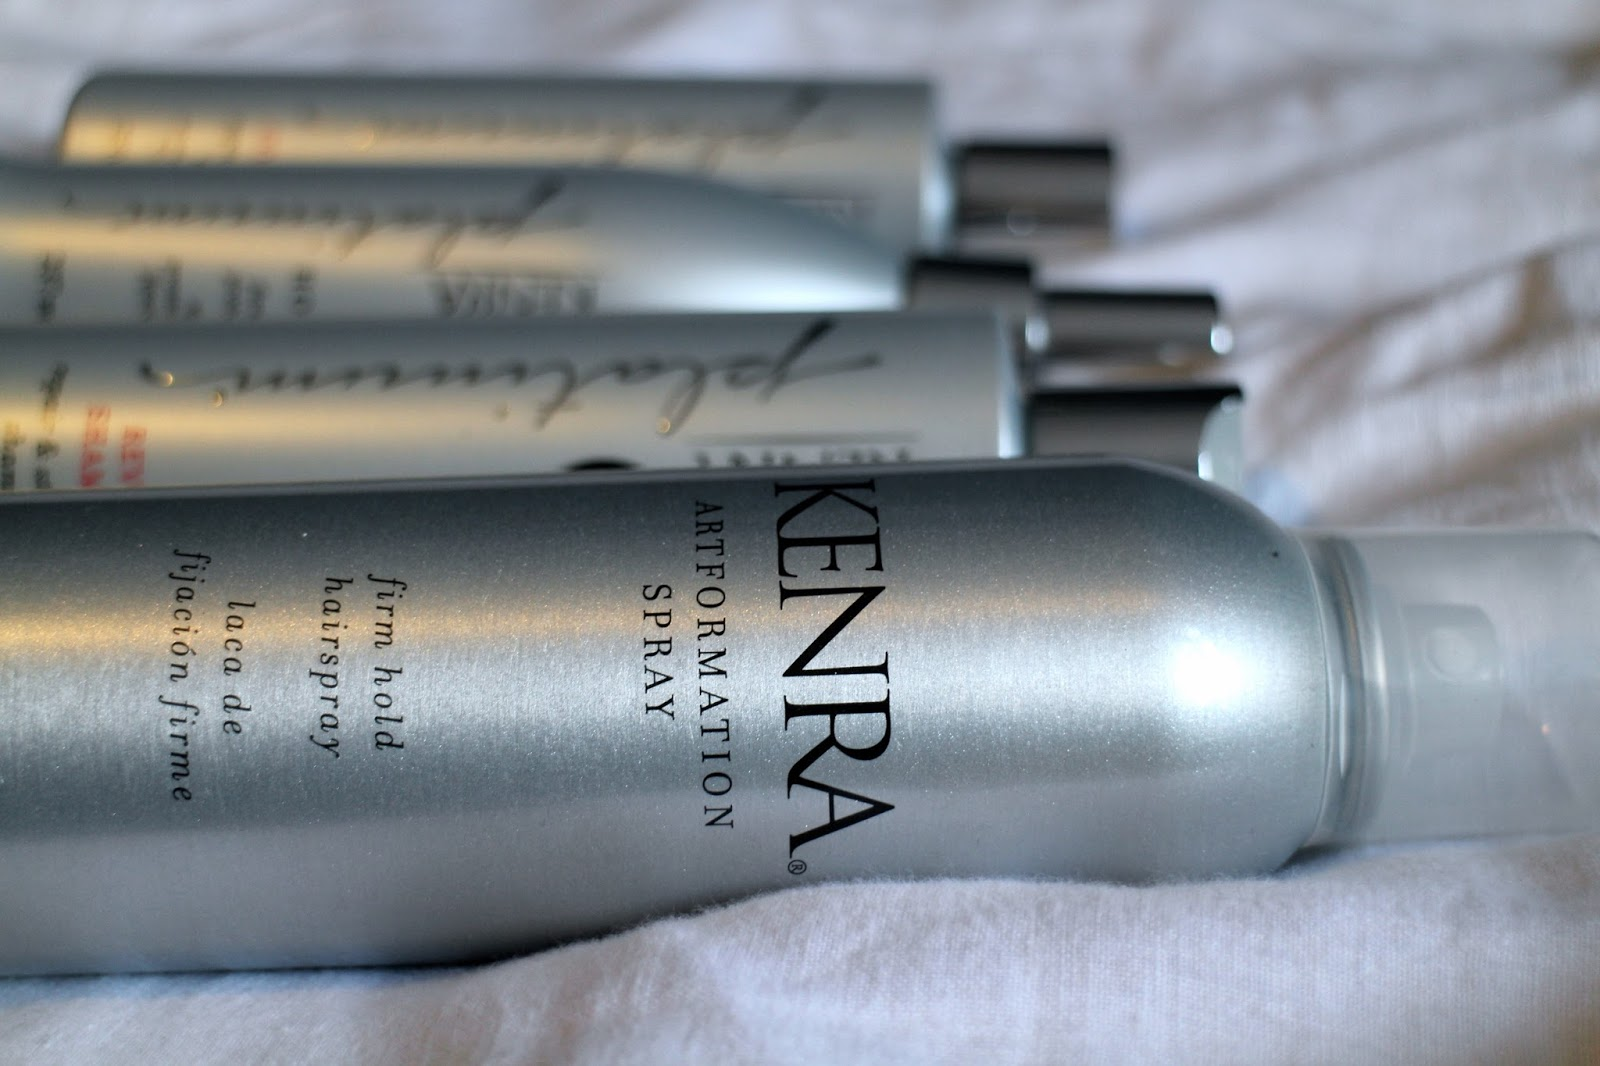 Kenra Professional haircare products